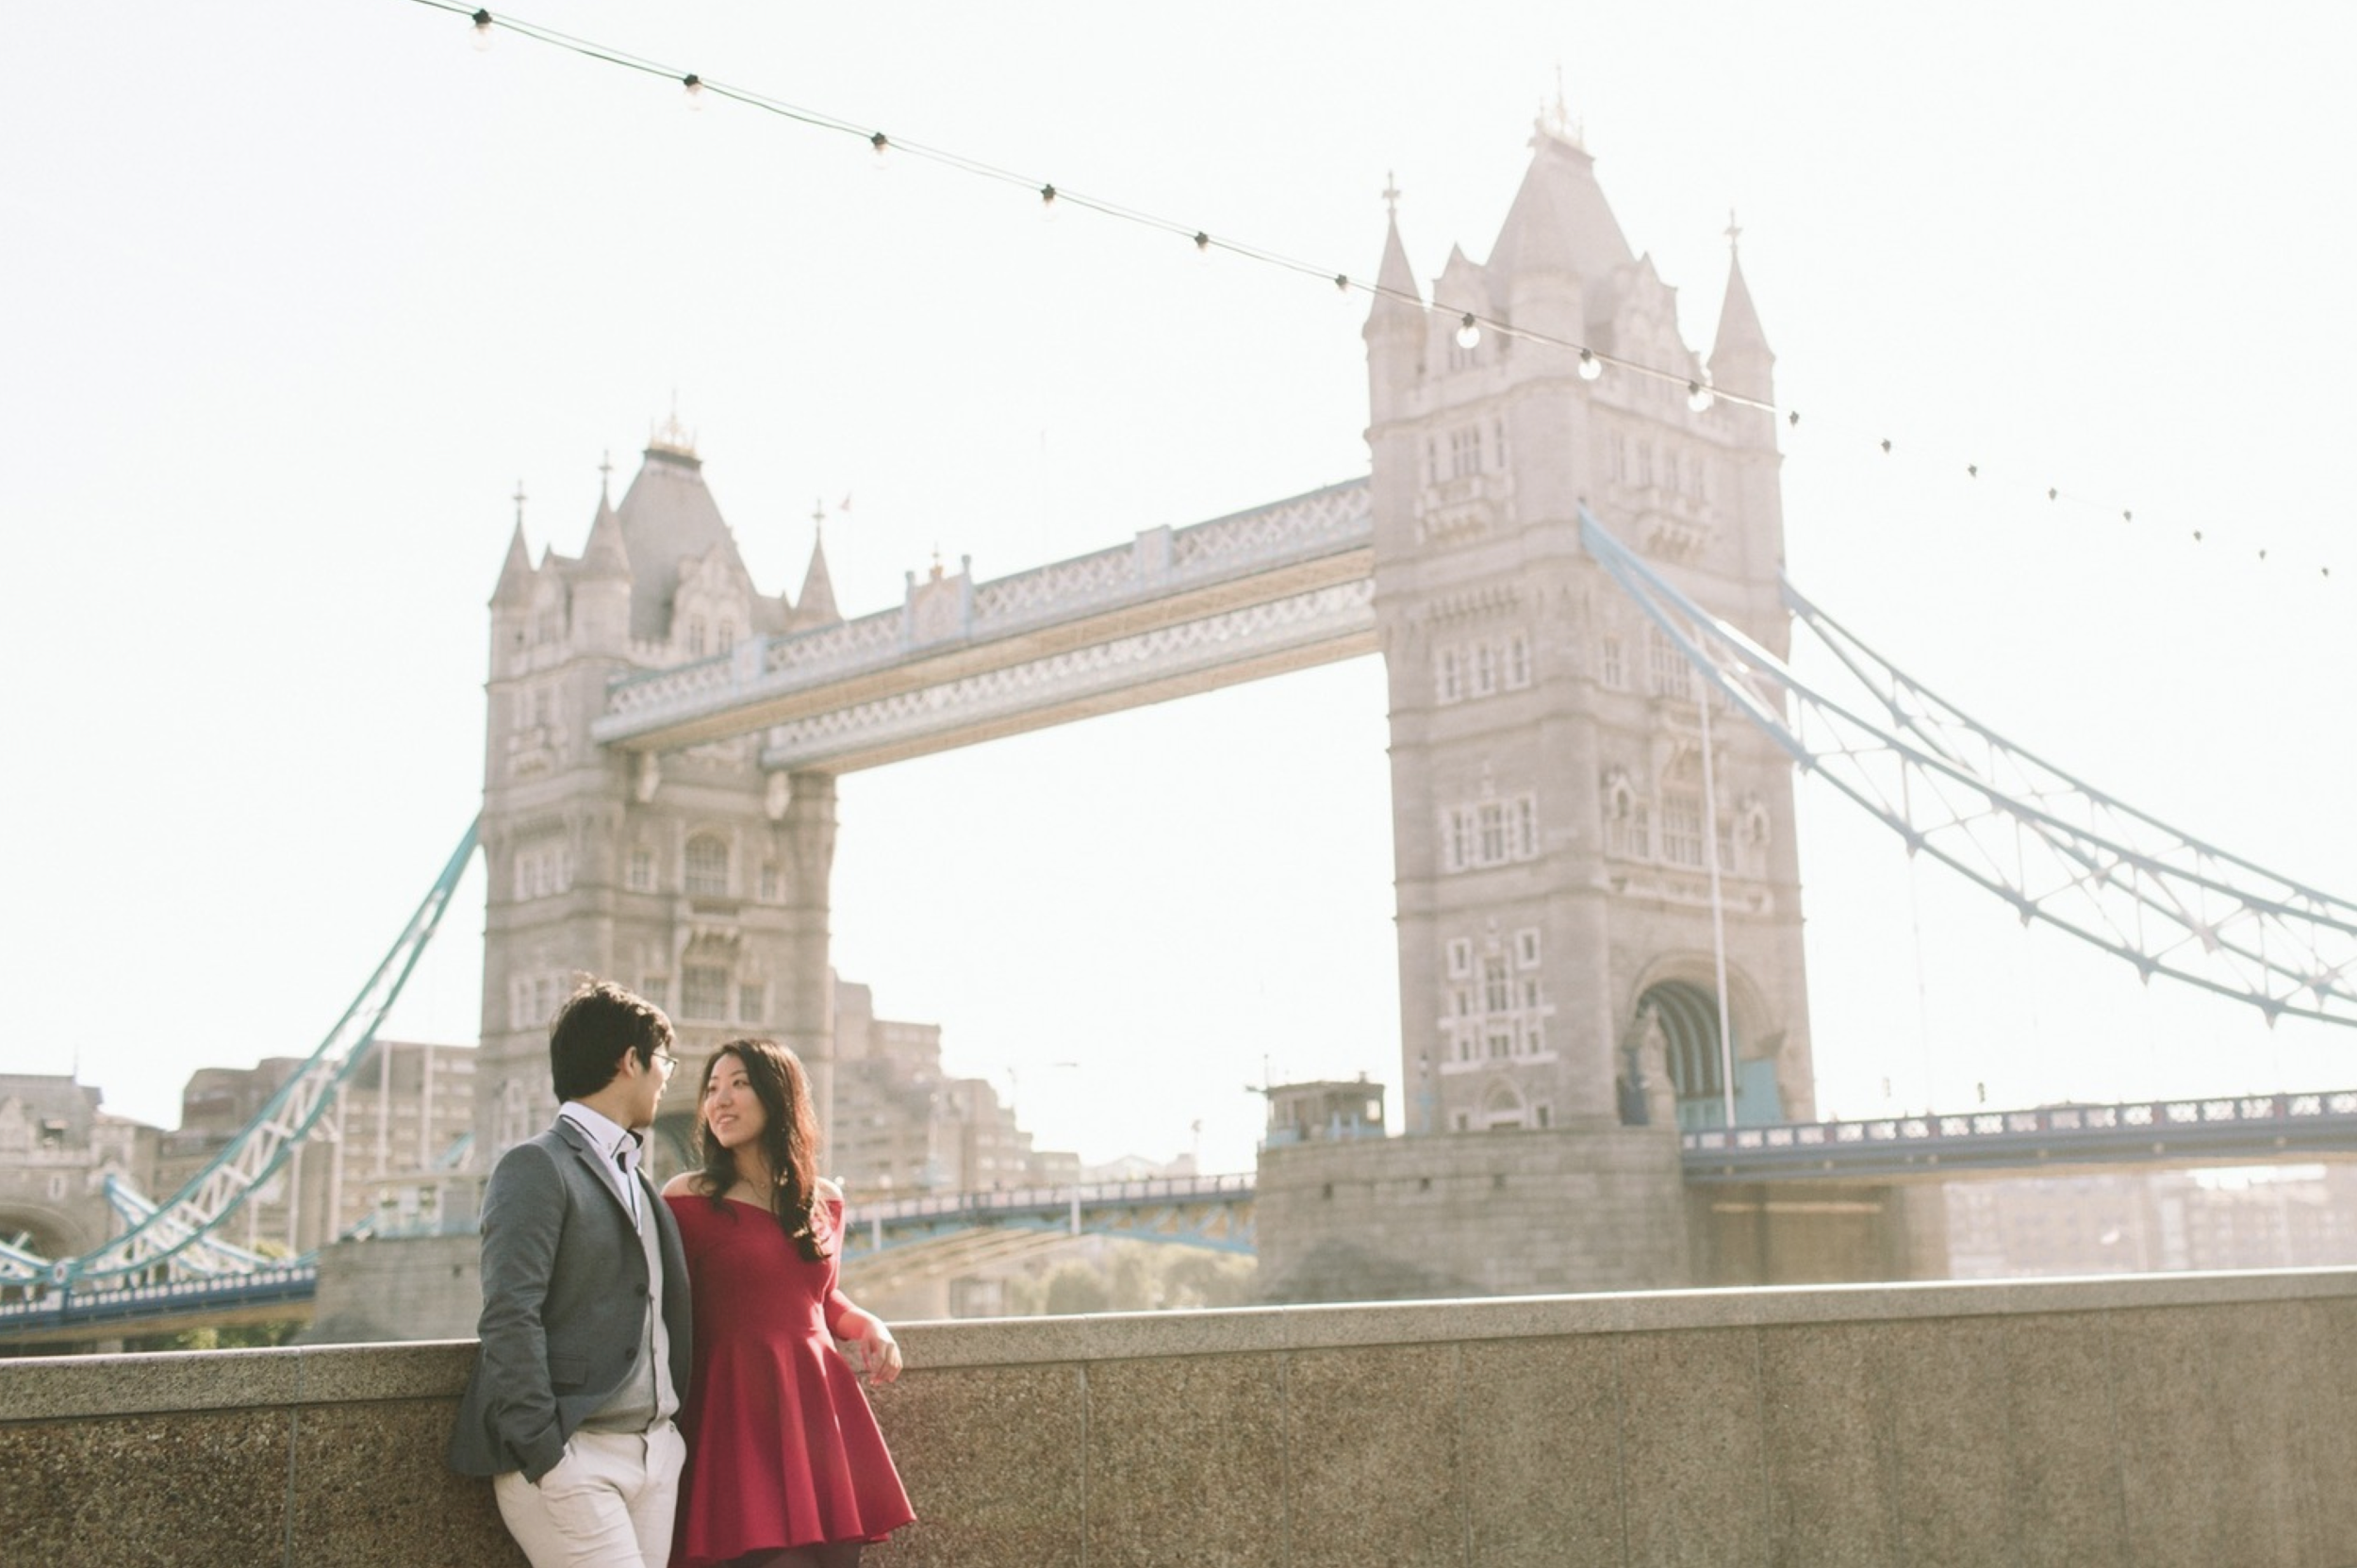 Flytographer: Hector in London